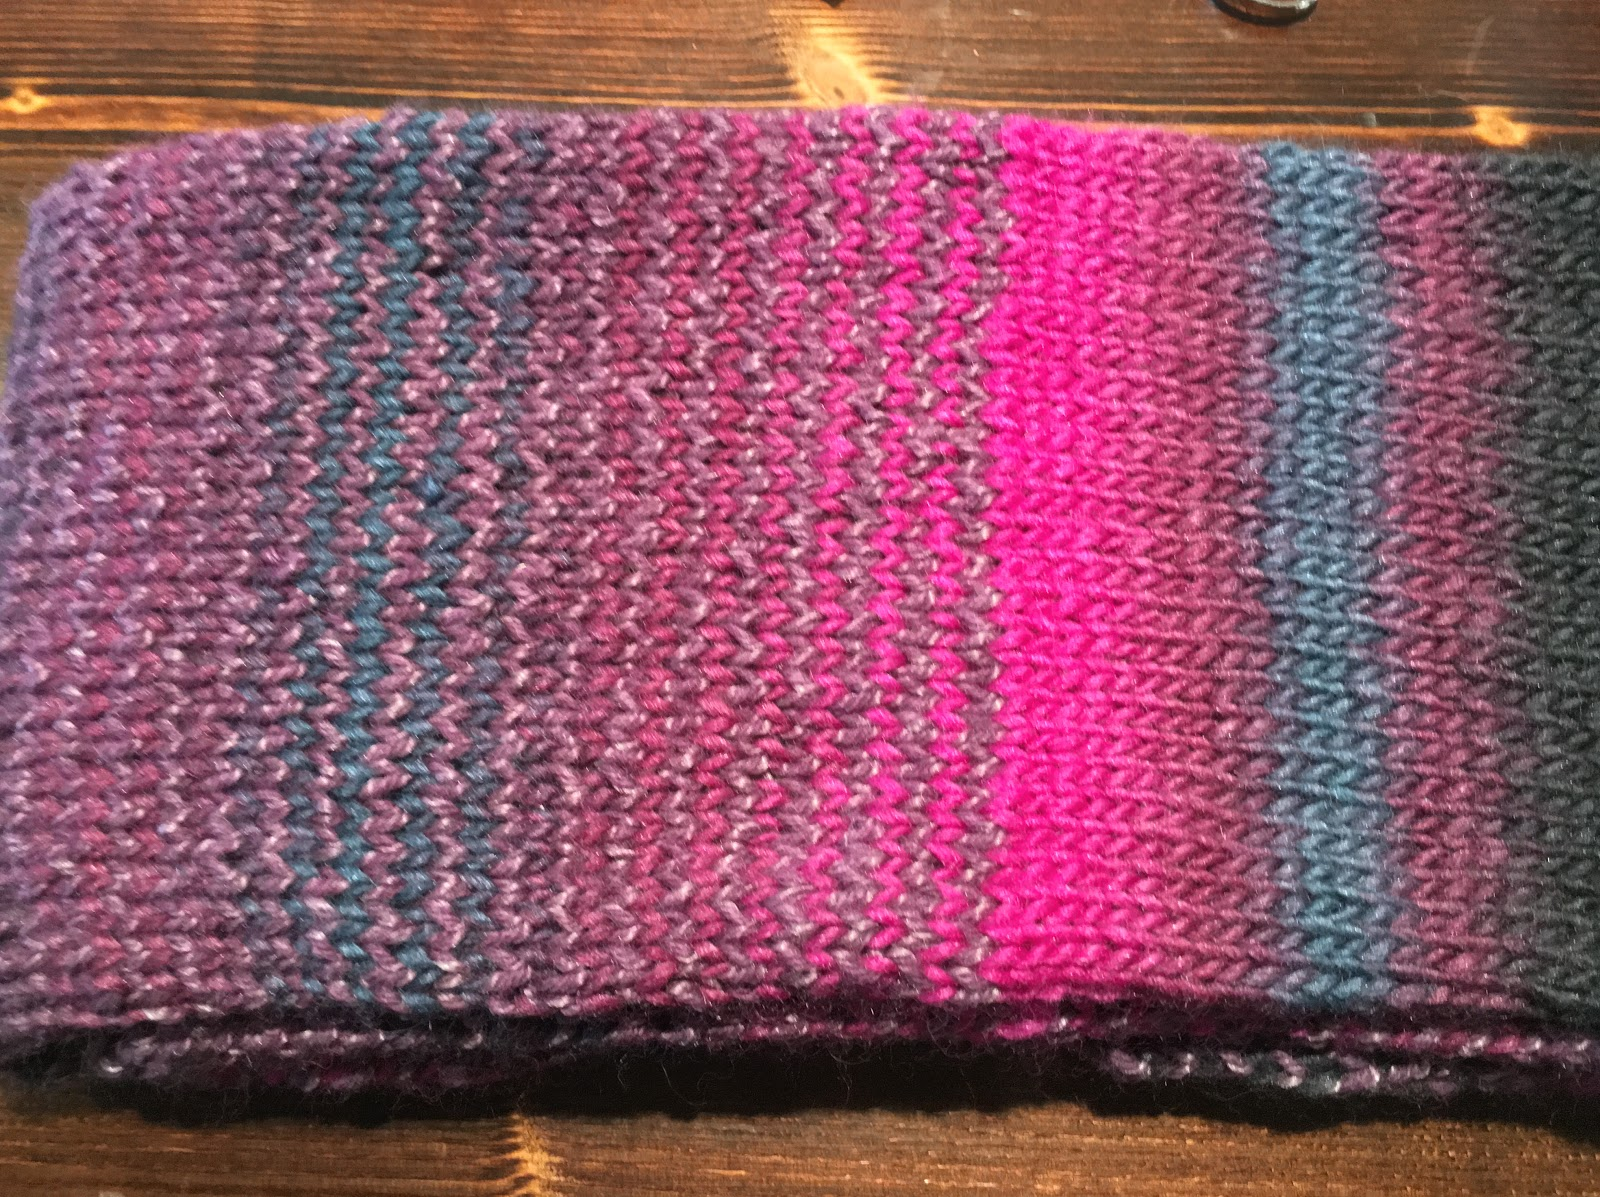 Knitting How To Graft Stitches Together : Stitch and Chat: Blood, Sweat, and Tears